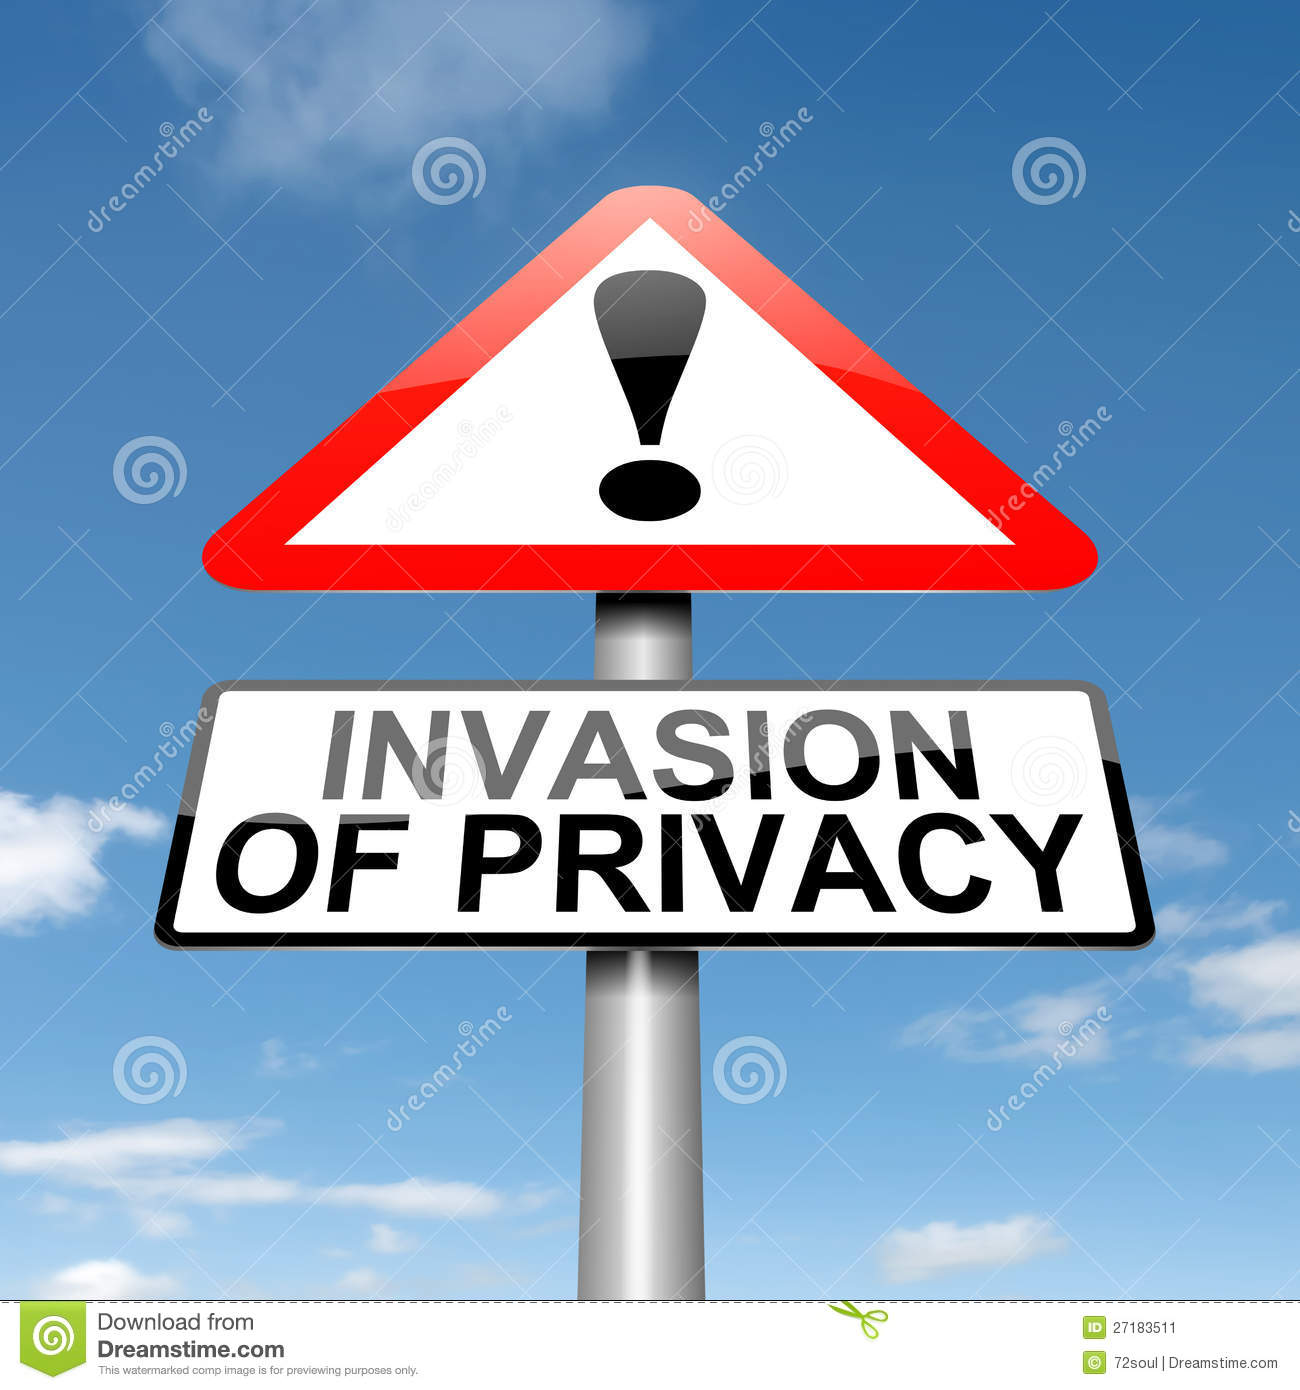 invasion privacy by technology Invasion of privacy is the unjustifiable intrusion into the personal life of another without consent however, invasion of privacy is not a tort on its own rather it generally consists of four distinct causes of action.